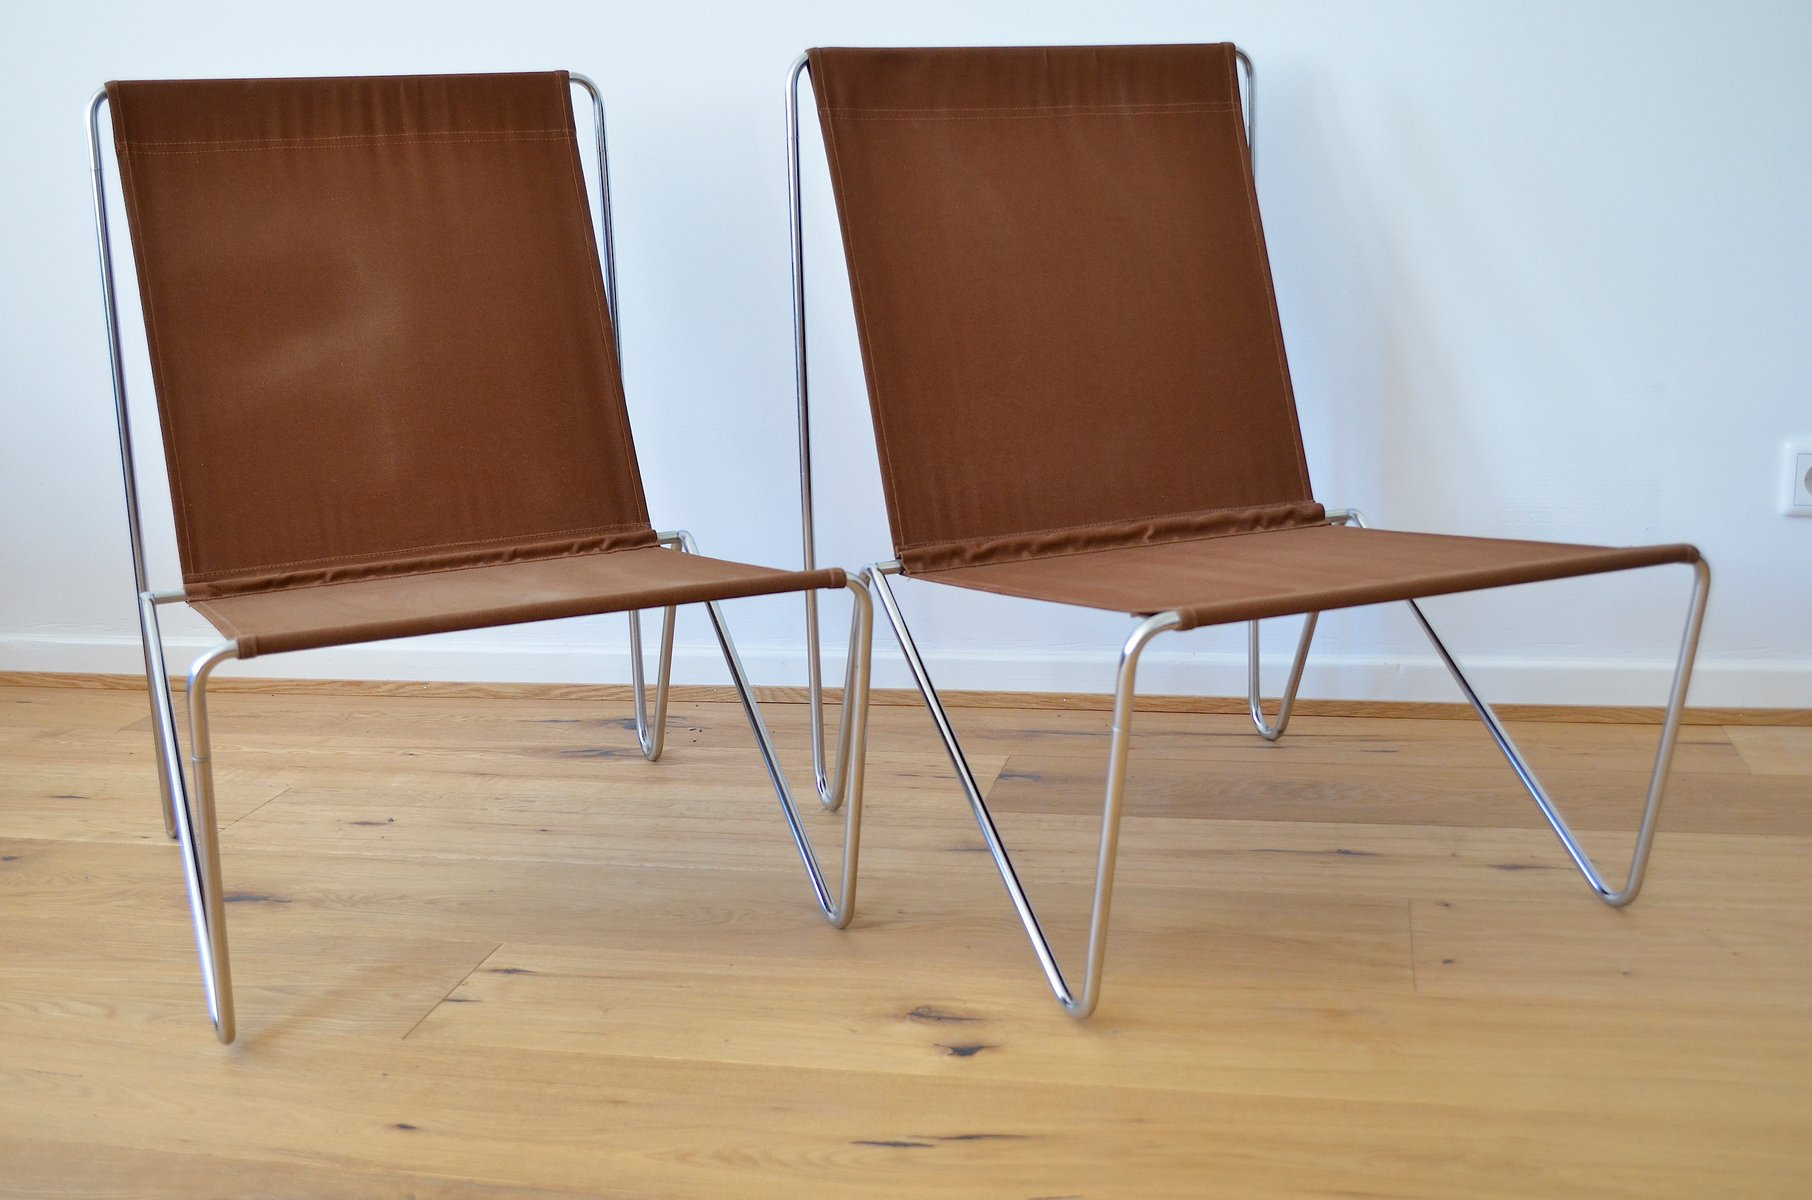 vintage scandinavian bachelor chairs by verner panton for fritz